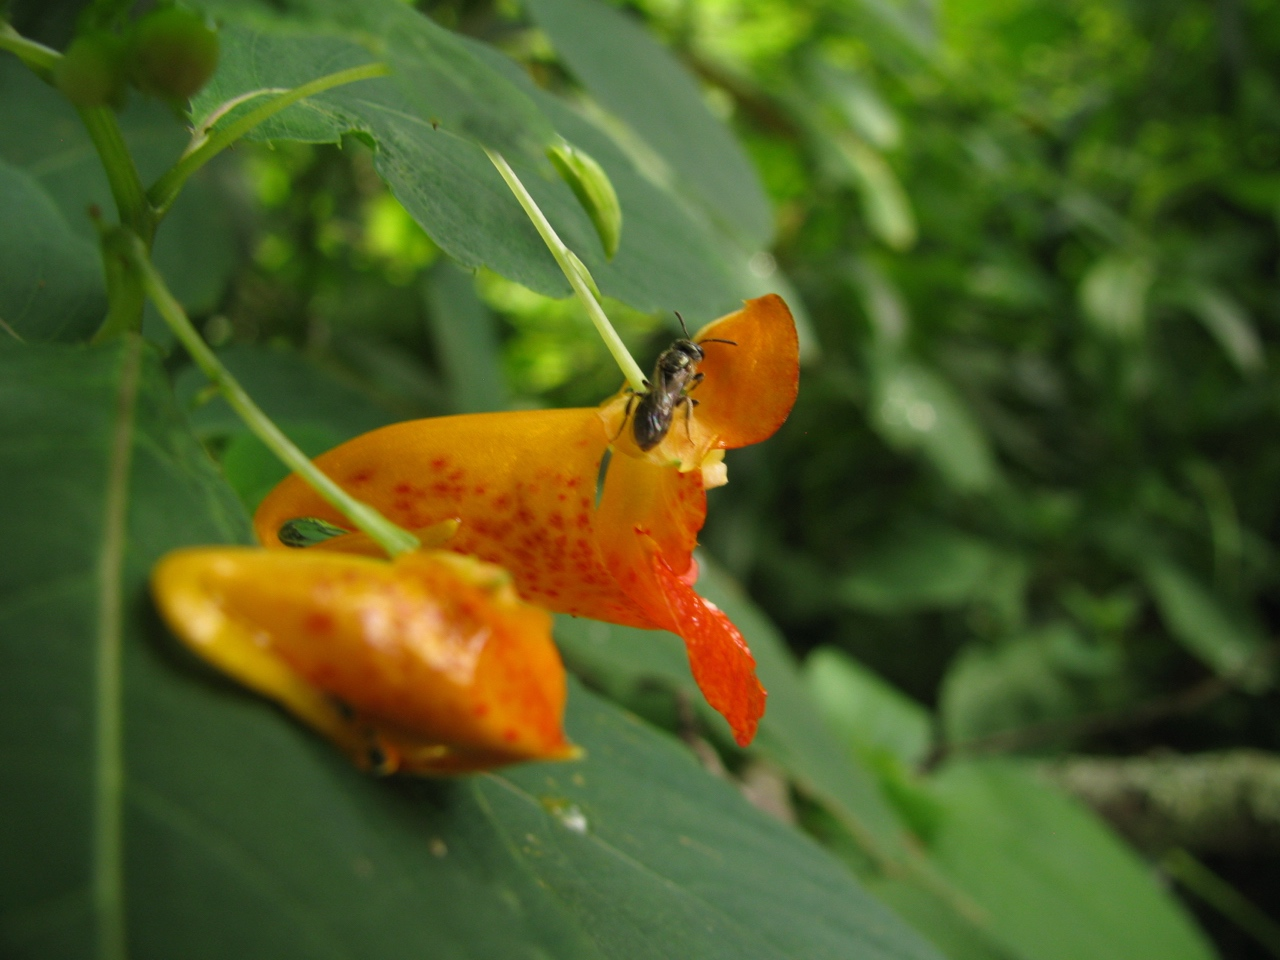 The Scientific Name is Impatiens capensis [=Impatiens biflora]. You will likely hear them called Orange Jewelweed, Orange Touch-me-not, Spotted Touch-me-not. This picture shows the Side view of flower showing trumpet-like shape of Impatiens capensis [=Impatiens biflora]